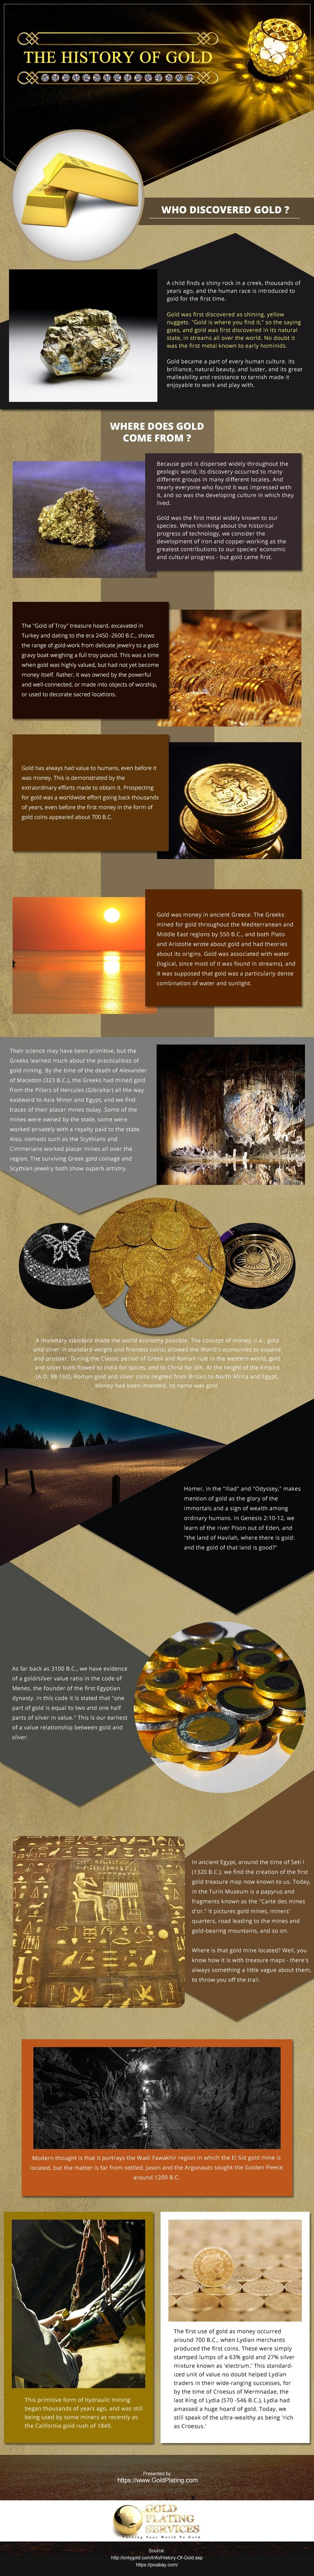 The History of Gold [infographic]